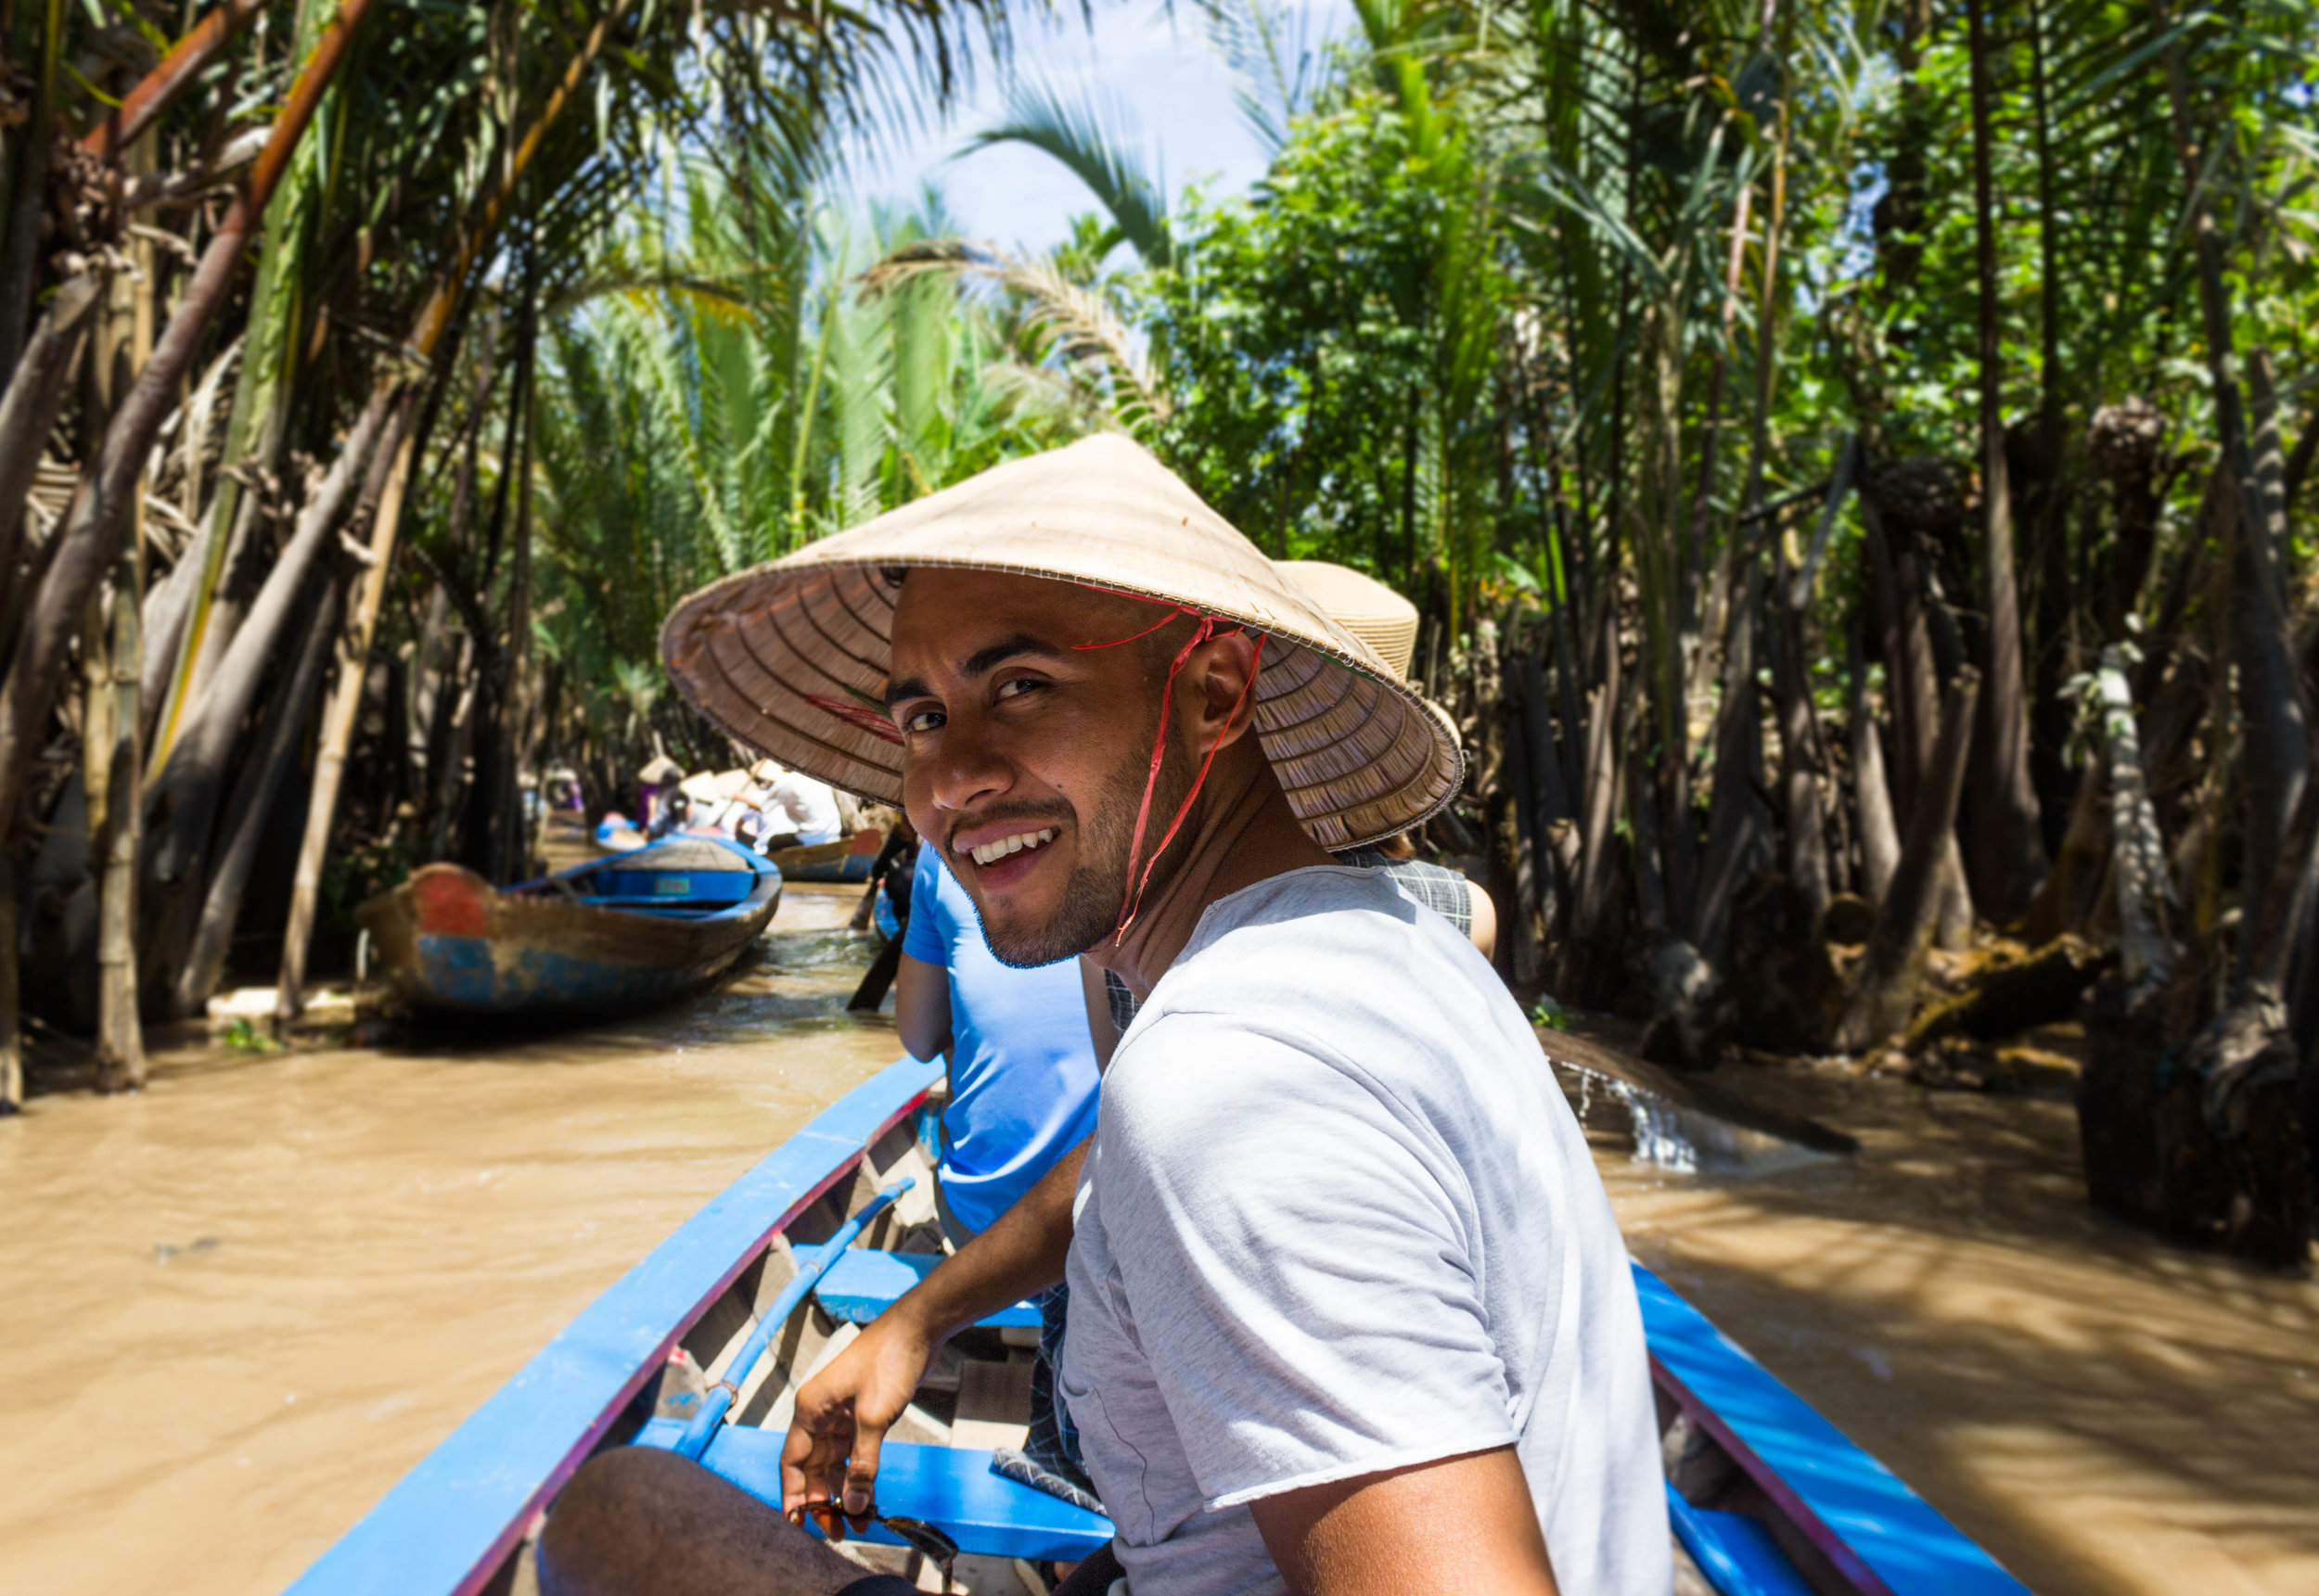 Riding on small boats in the Mekong River delta